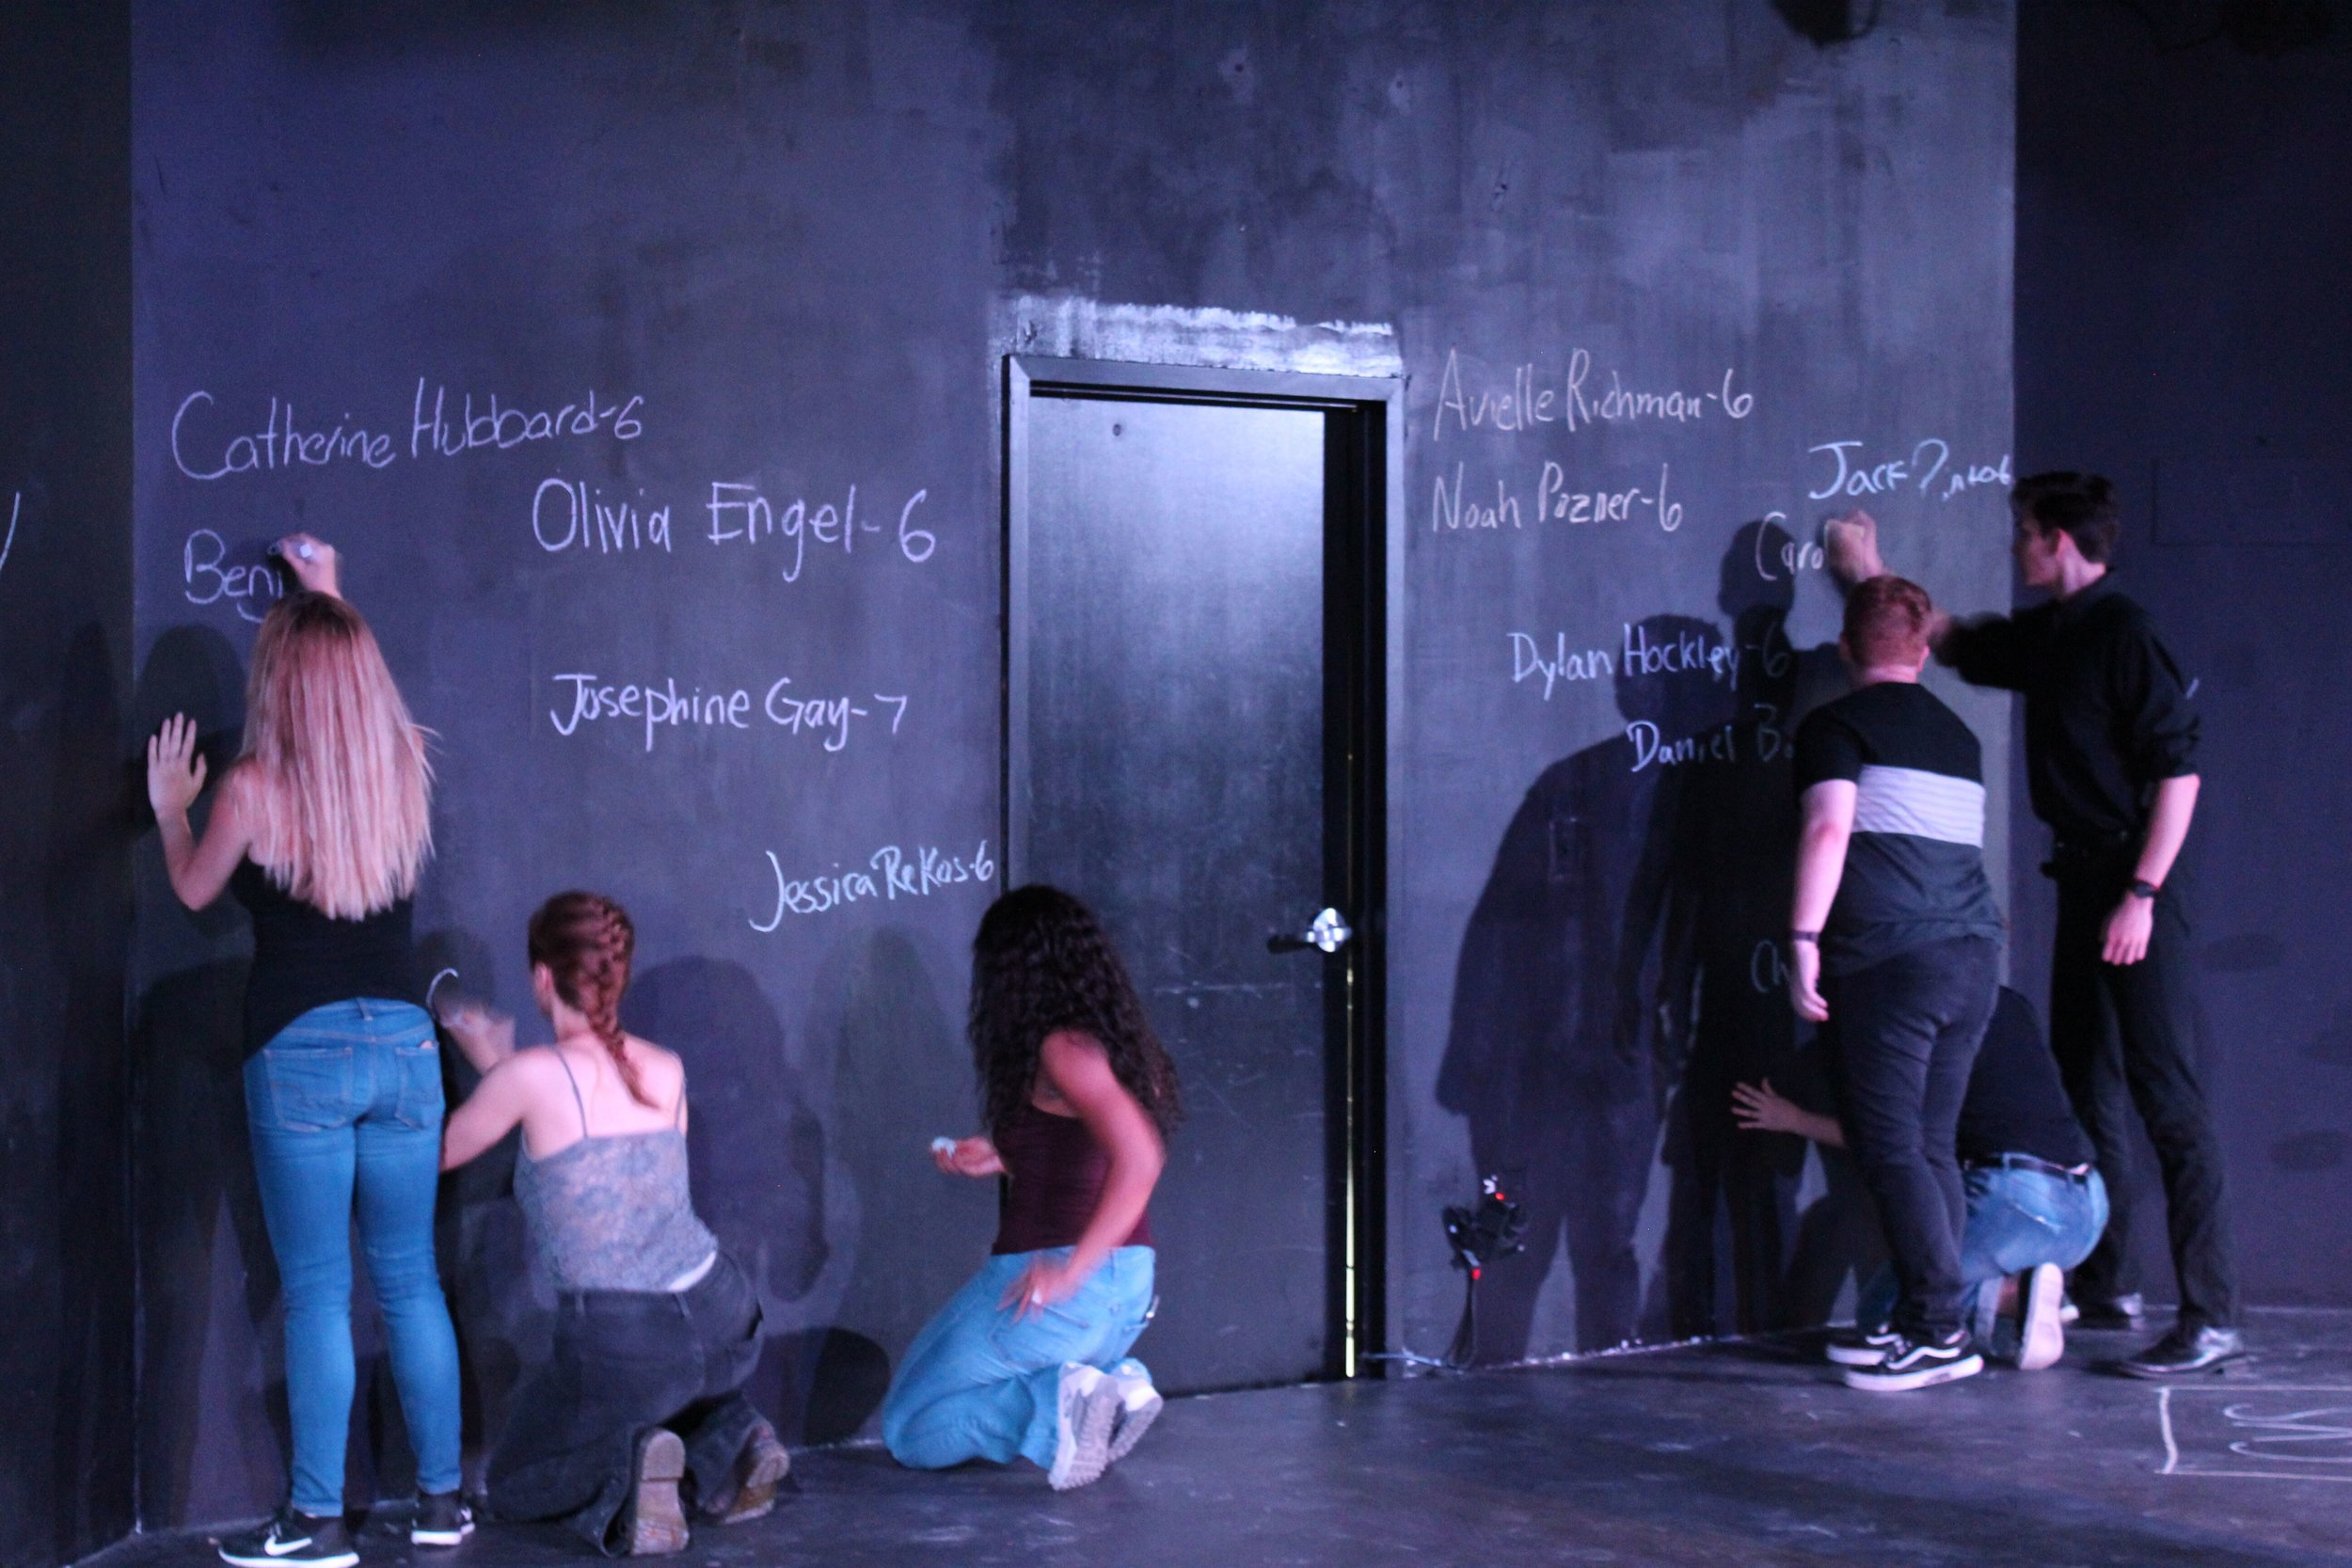 After a difficult scene walking audiences through the events of December 14th, the actors take a moment to write the names of all the victims on the back wall of the theatre. The names remain there for the rest of the play.